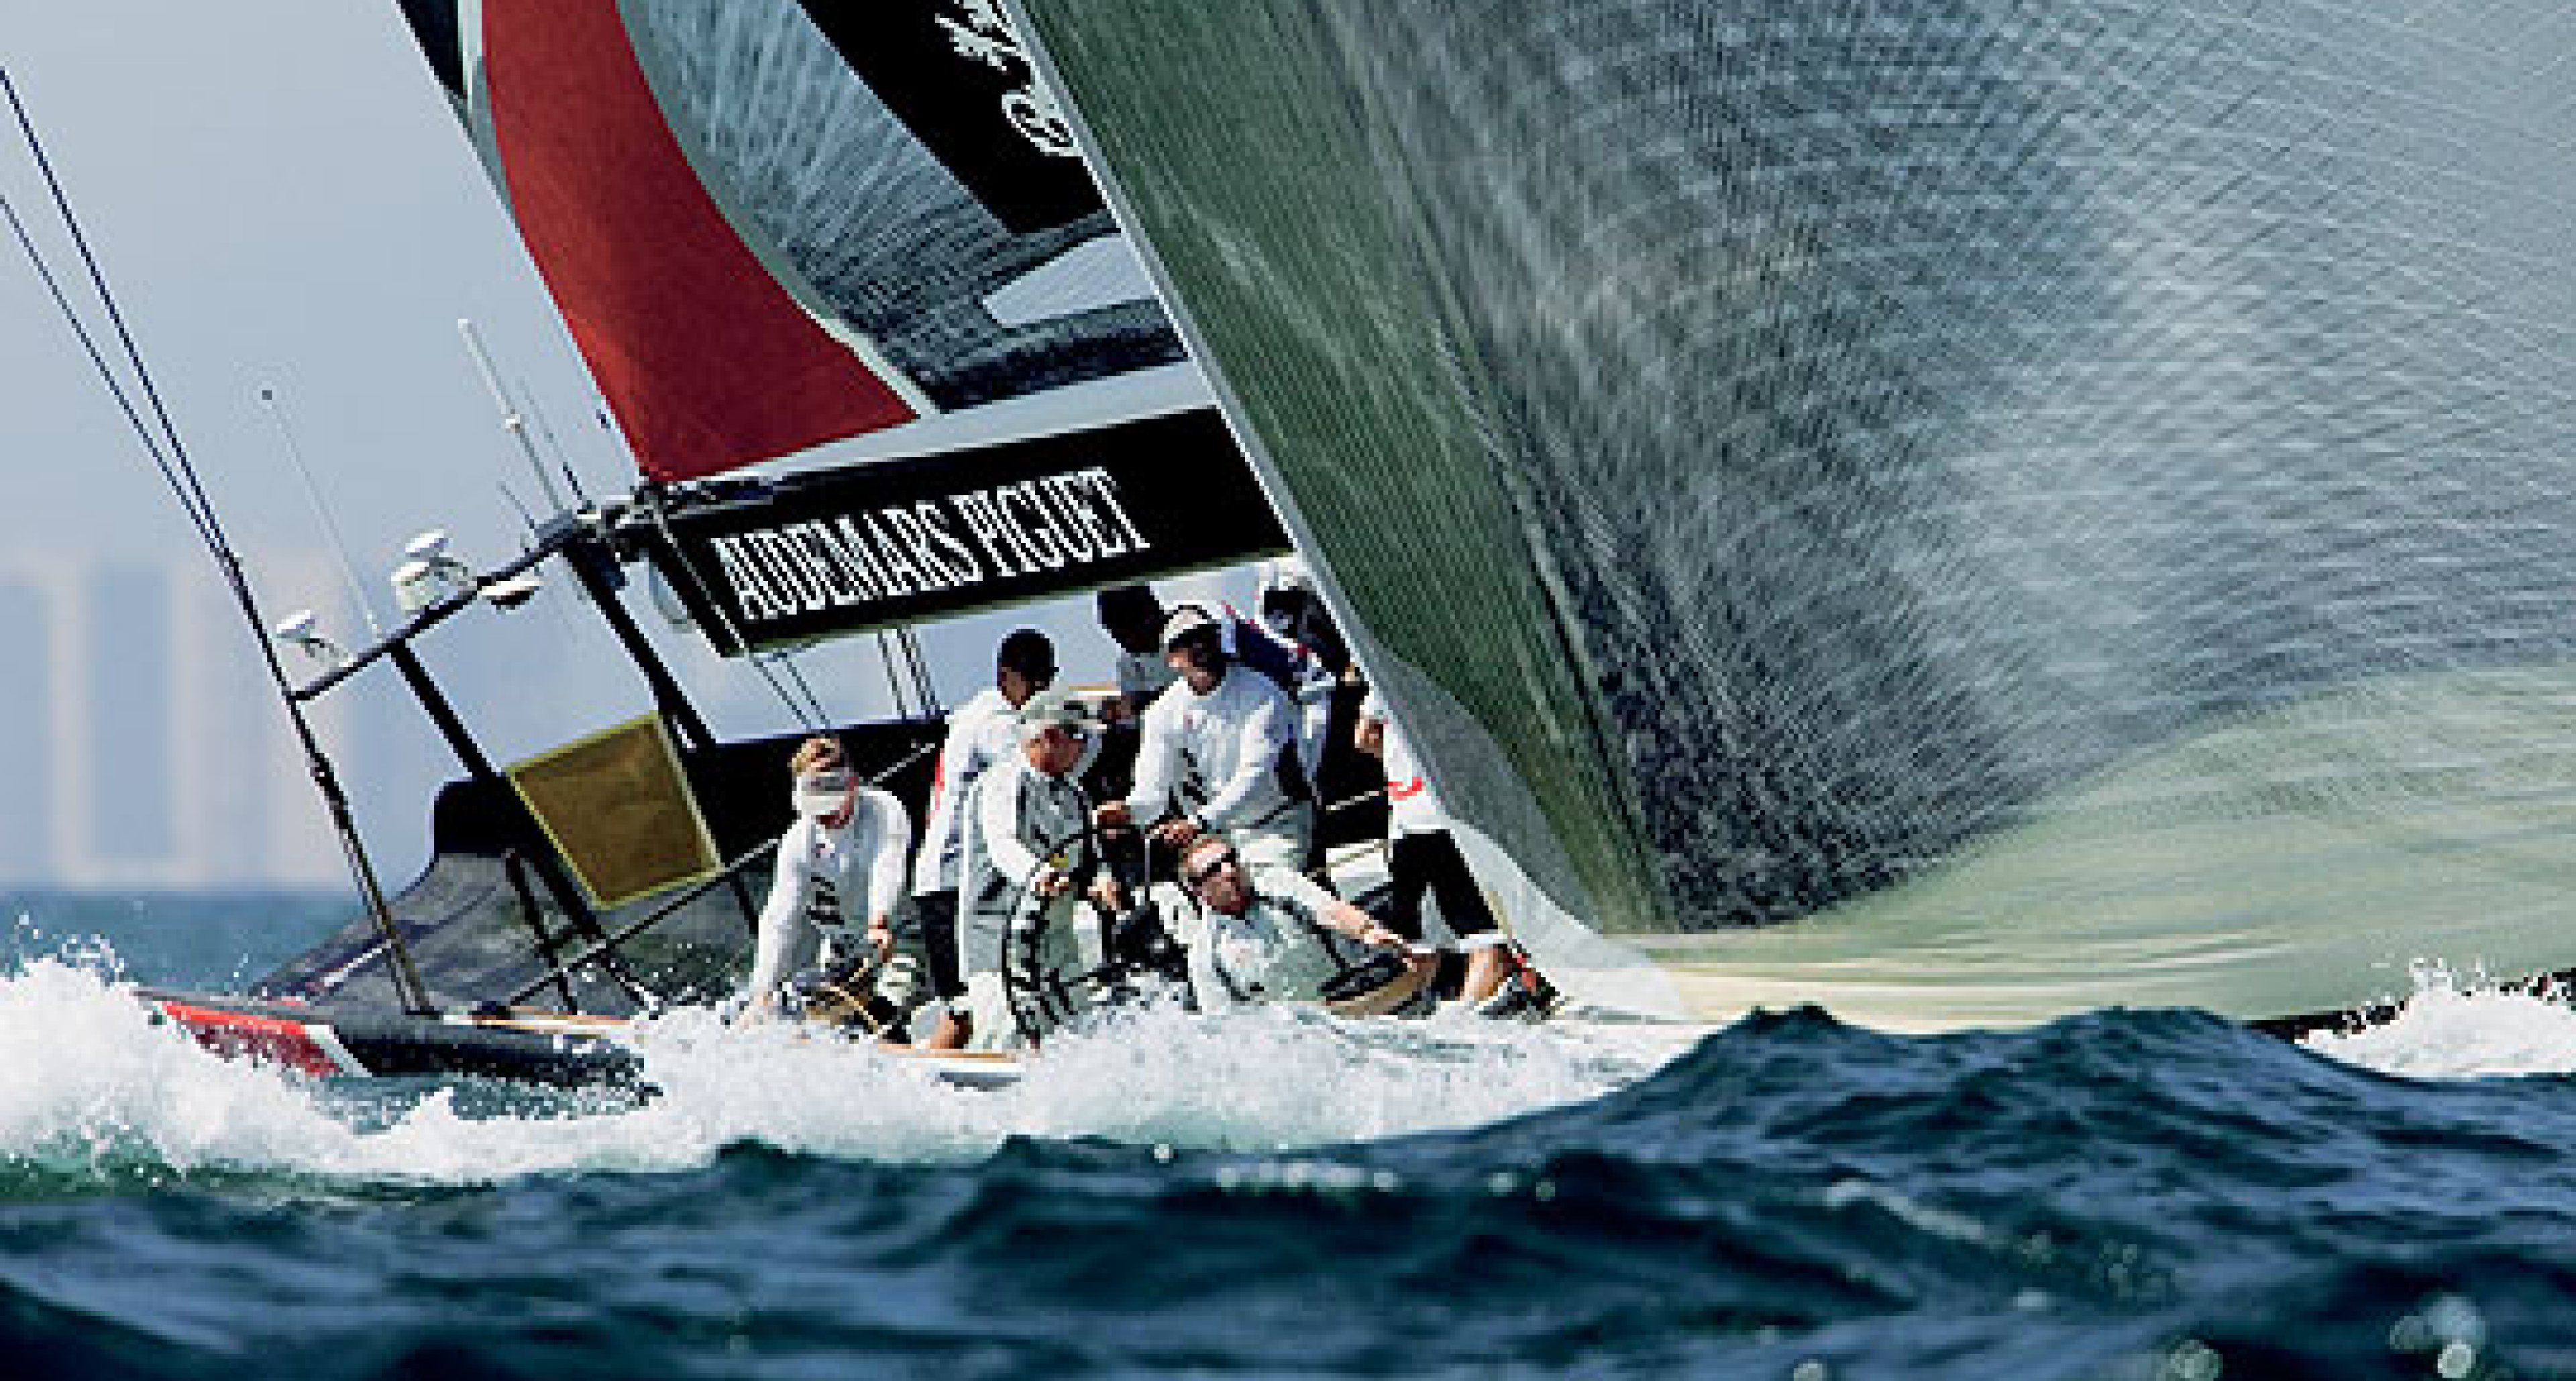 Audemars Piguet, Alinghi and the 32nd America's Cup